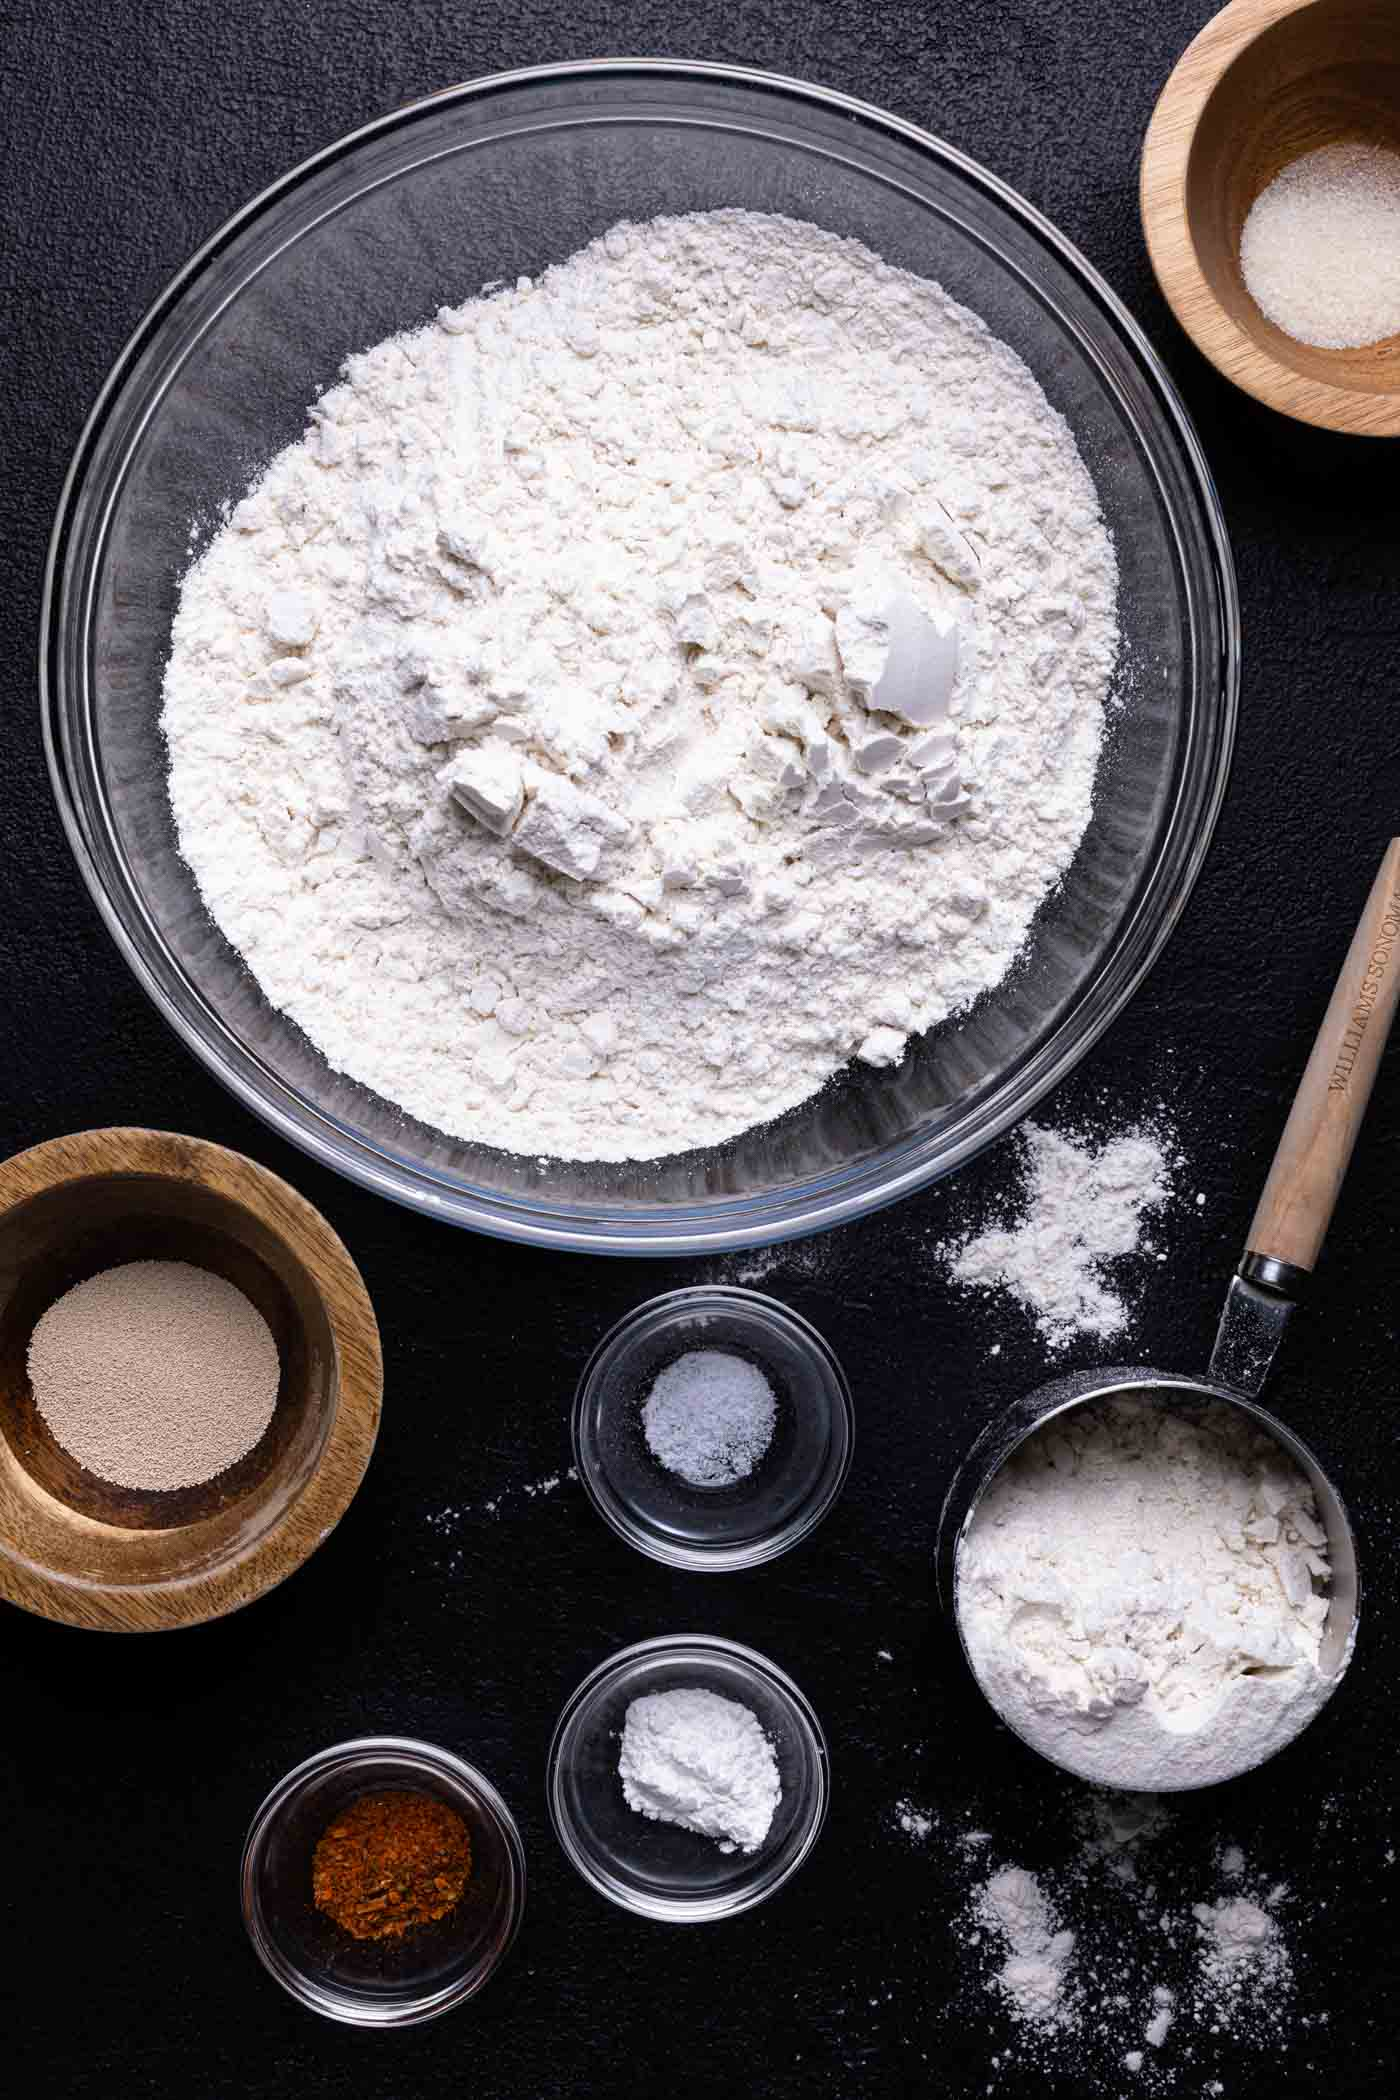 ingredients for gluten free pizza crust in small bowls